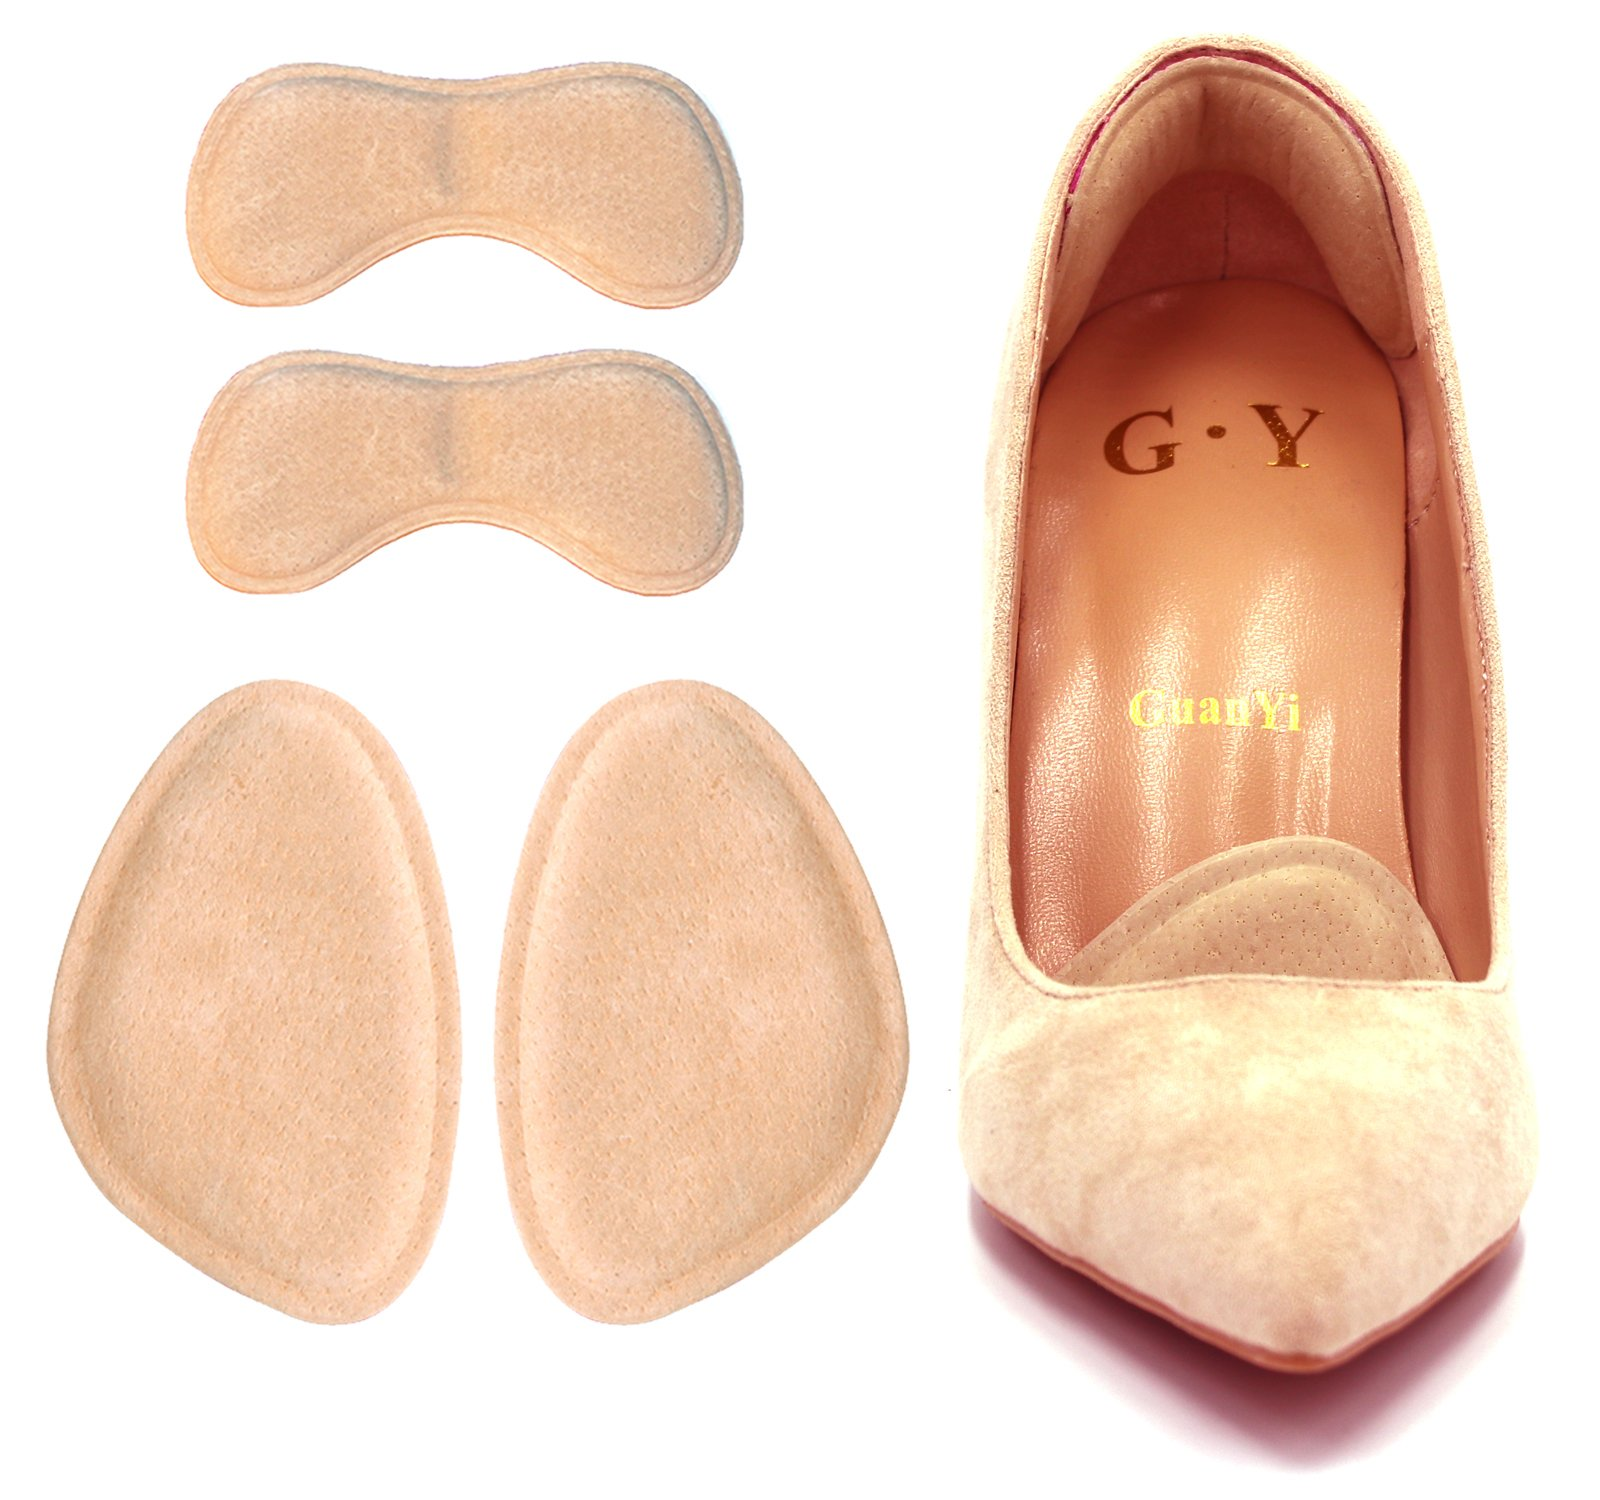 Forefoot Pads,High Heel Cushion Women, Heel Grips, Anti Slip Shoe Cushion, Ball of Foot Insoles, High Heel Liner, Blister Prevention Improve Shoes Too Big,2 Pairs-Khaki